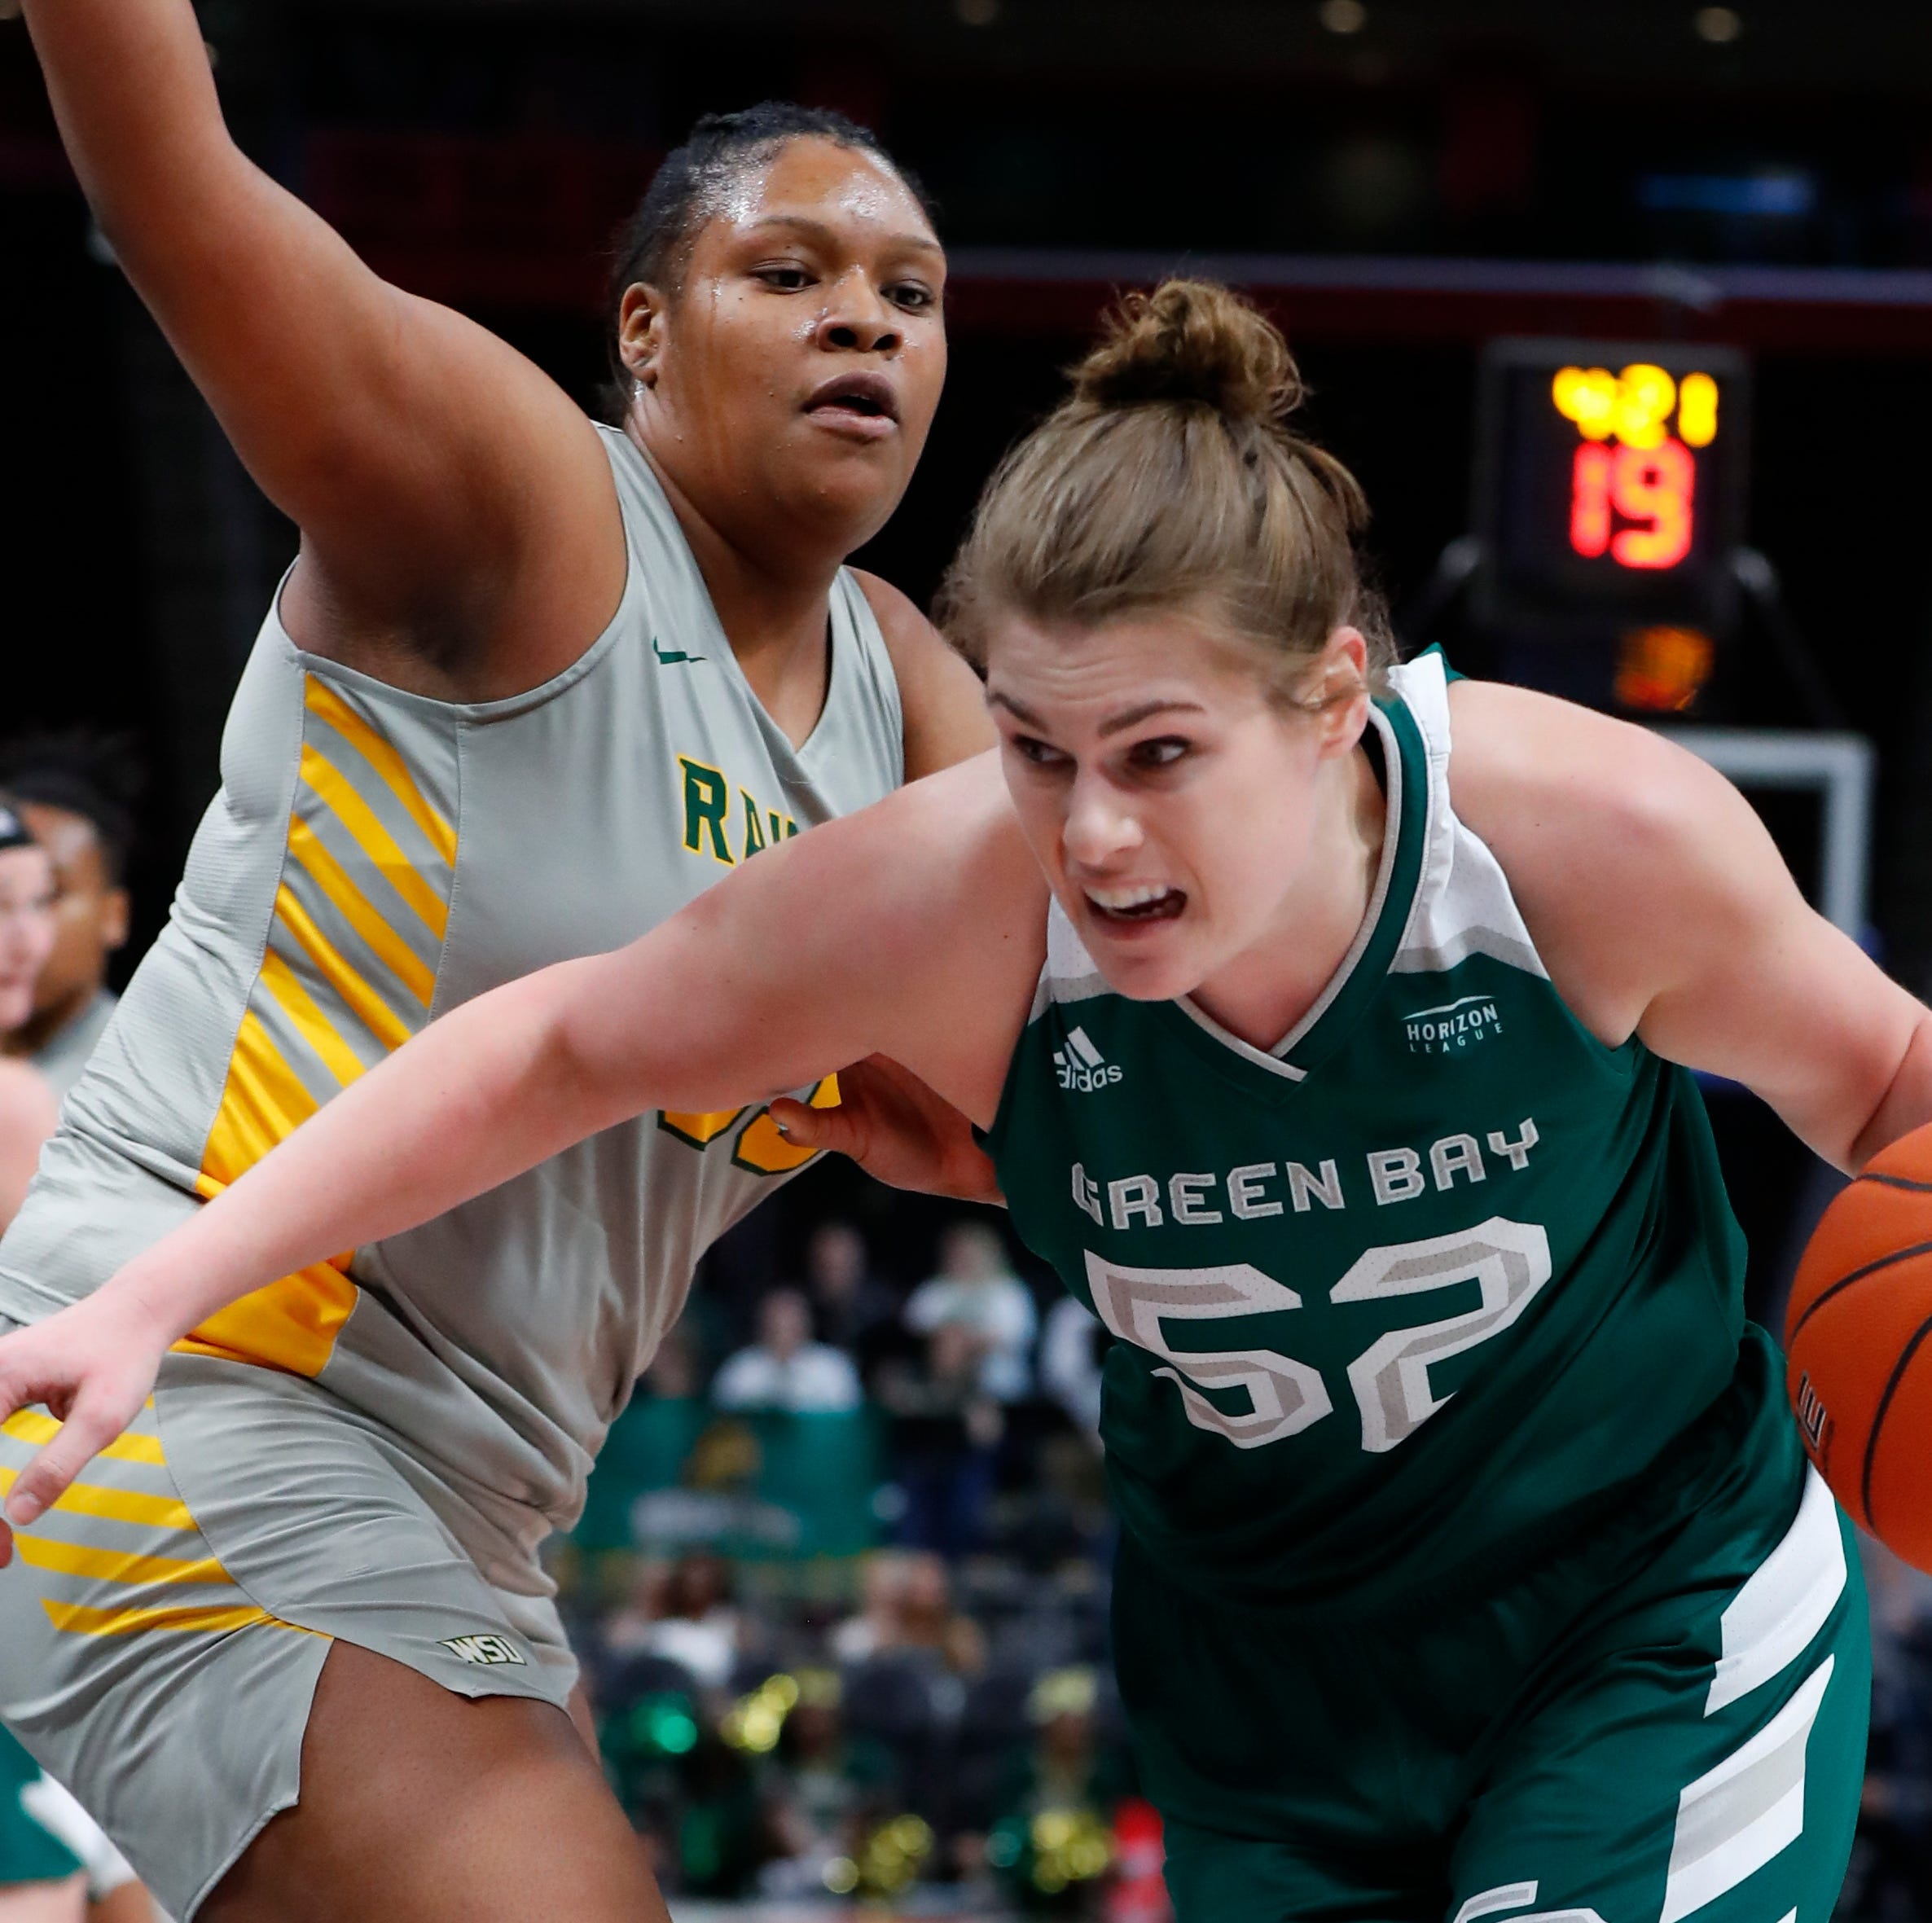 UWGB women's basketball: Cold quarter dooms Phoenix in Horizon League title game